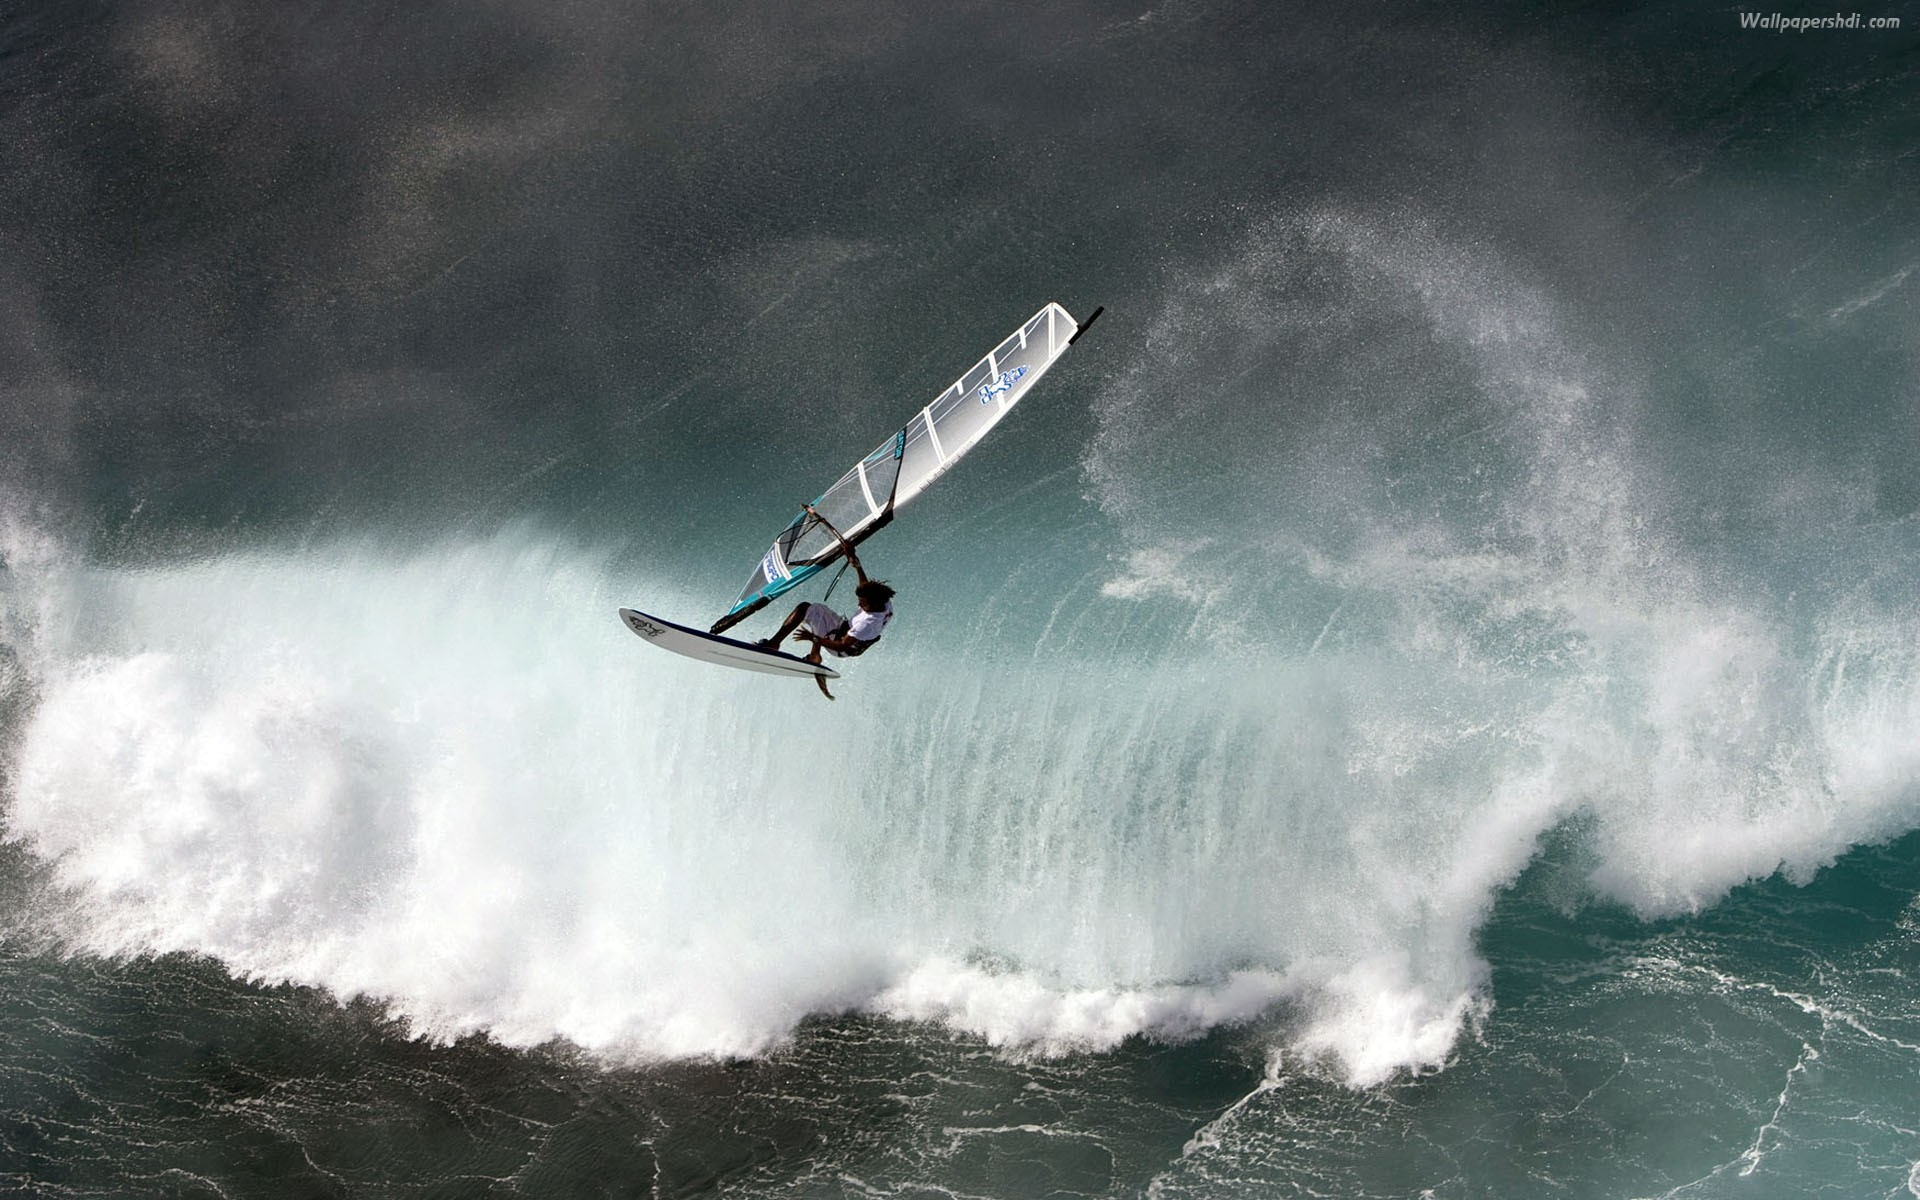 Wind surfing extreme sport wallpaper hd for free, Backgrounds